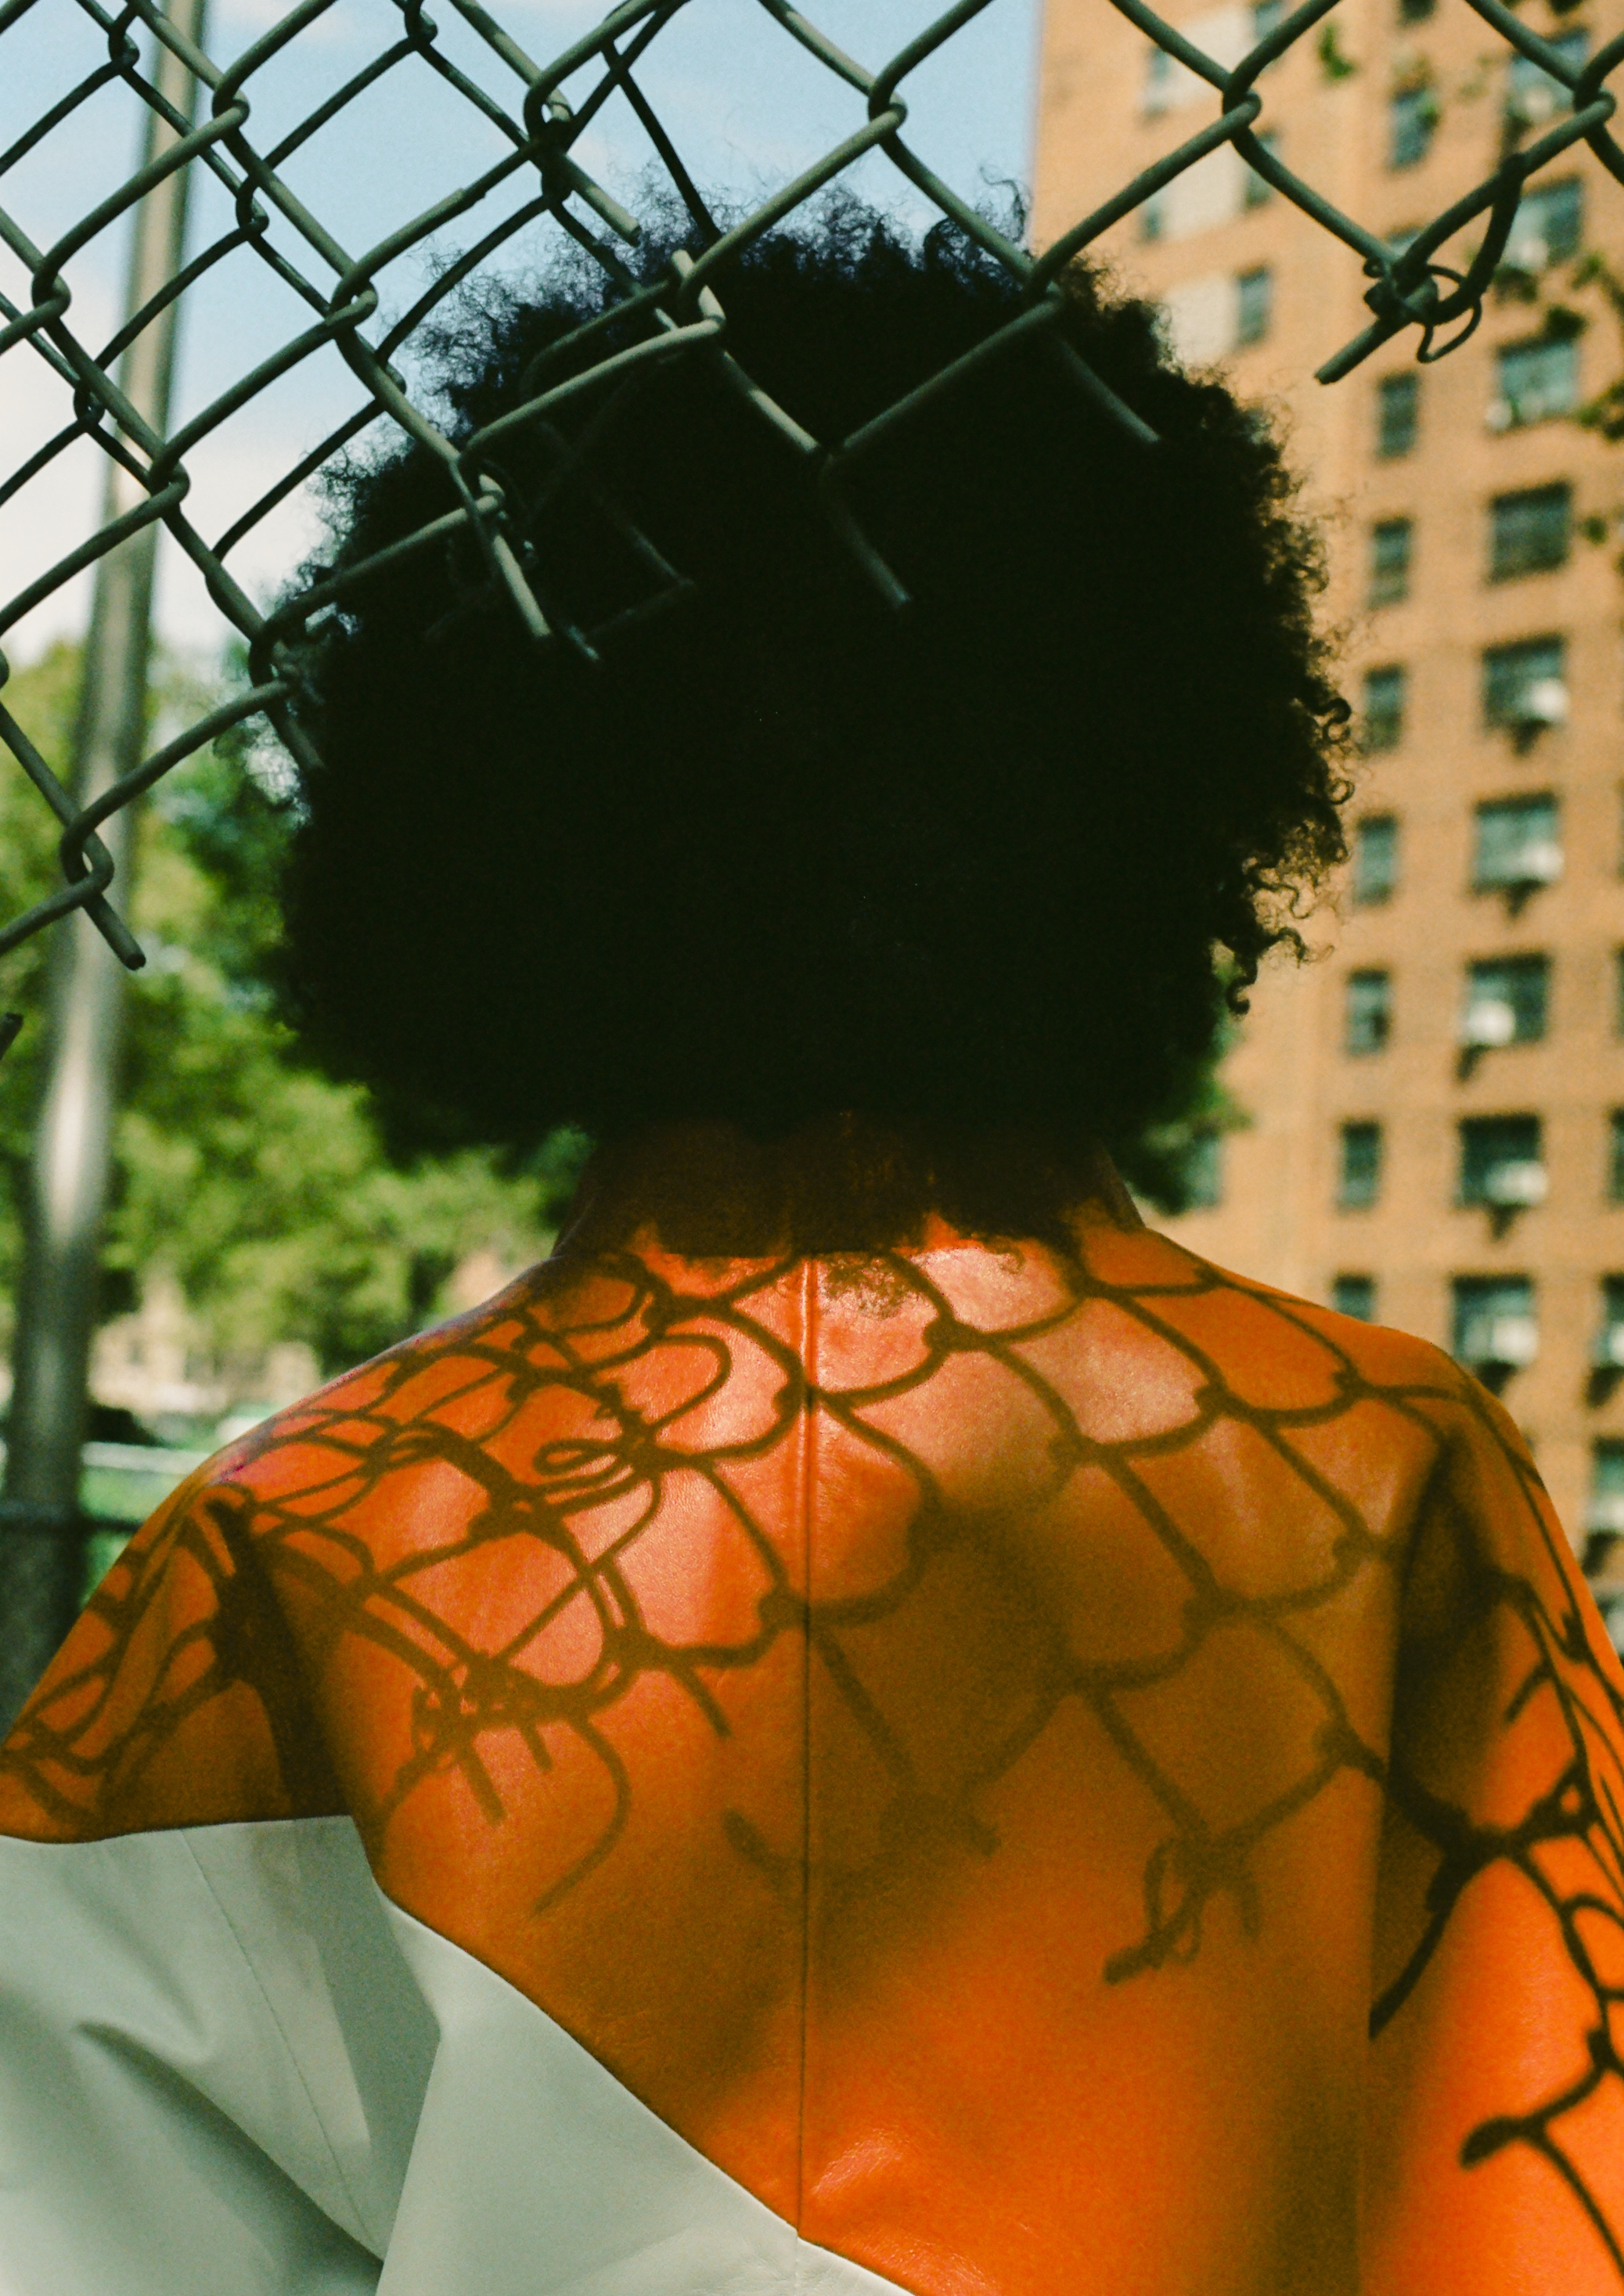 Irene Kostas, the founder and designer of ONAR –a Helsinki-based sustainable shearling and leather brand, stayed in New York as FCINY's artist-in-residence in May and June 2017. During her two-month residency she designed the upcoming SS18 Movement collection. The campaign images were shot in Harlem later that summer.